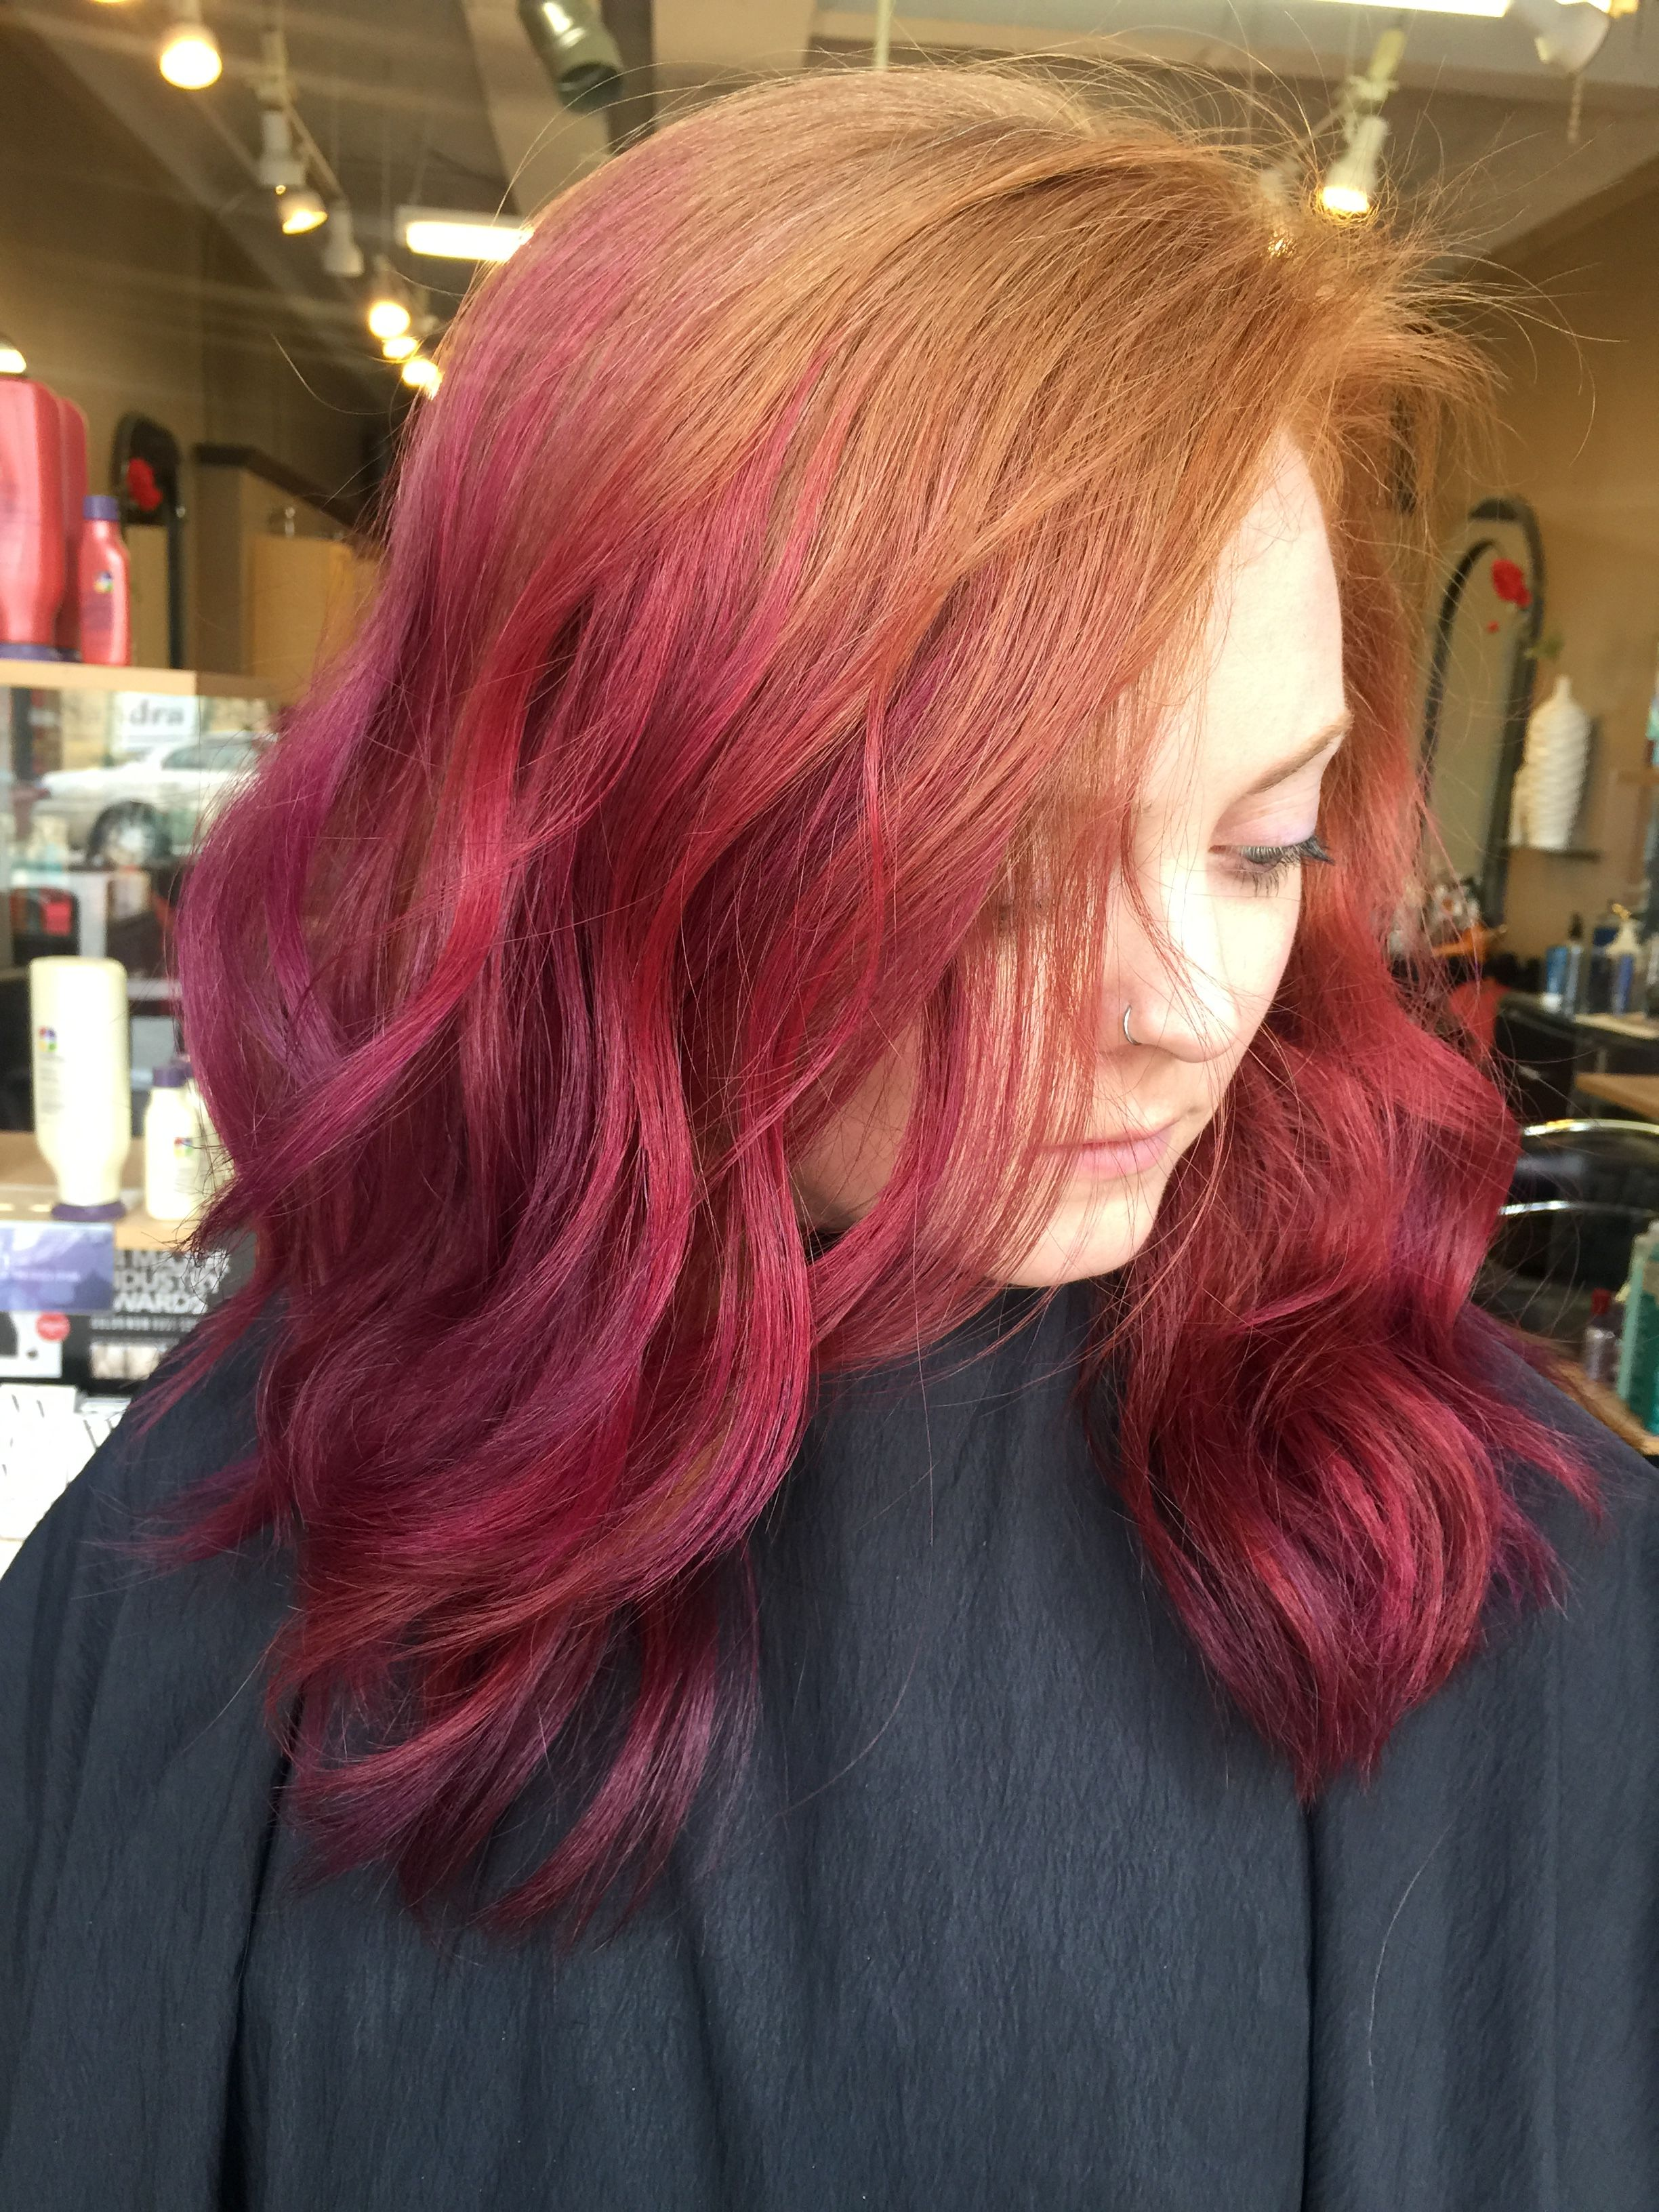 Natural Redhead With Purple And Pink Fade Natural Red Hair Brides Maid Hair Red Hair Fade